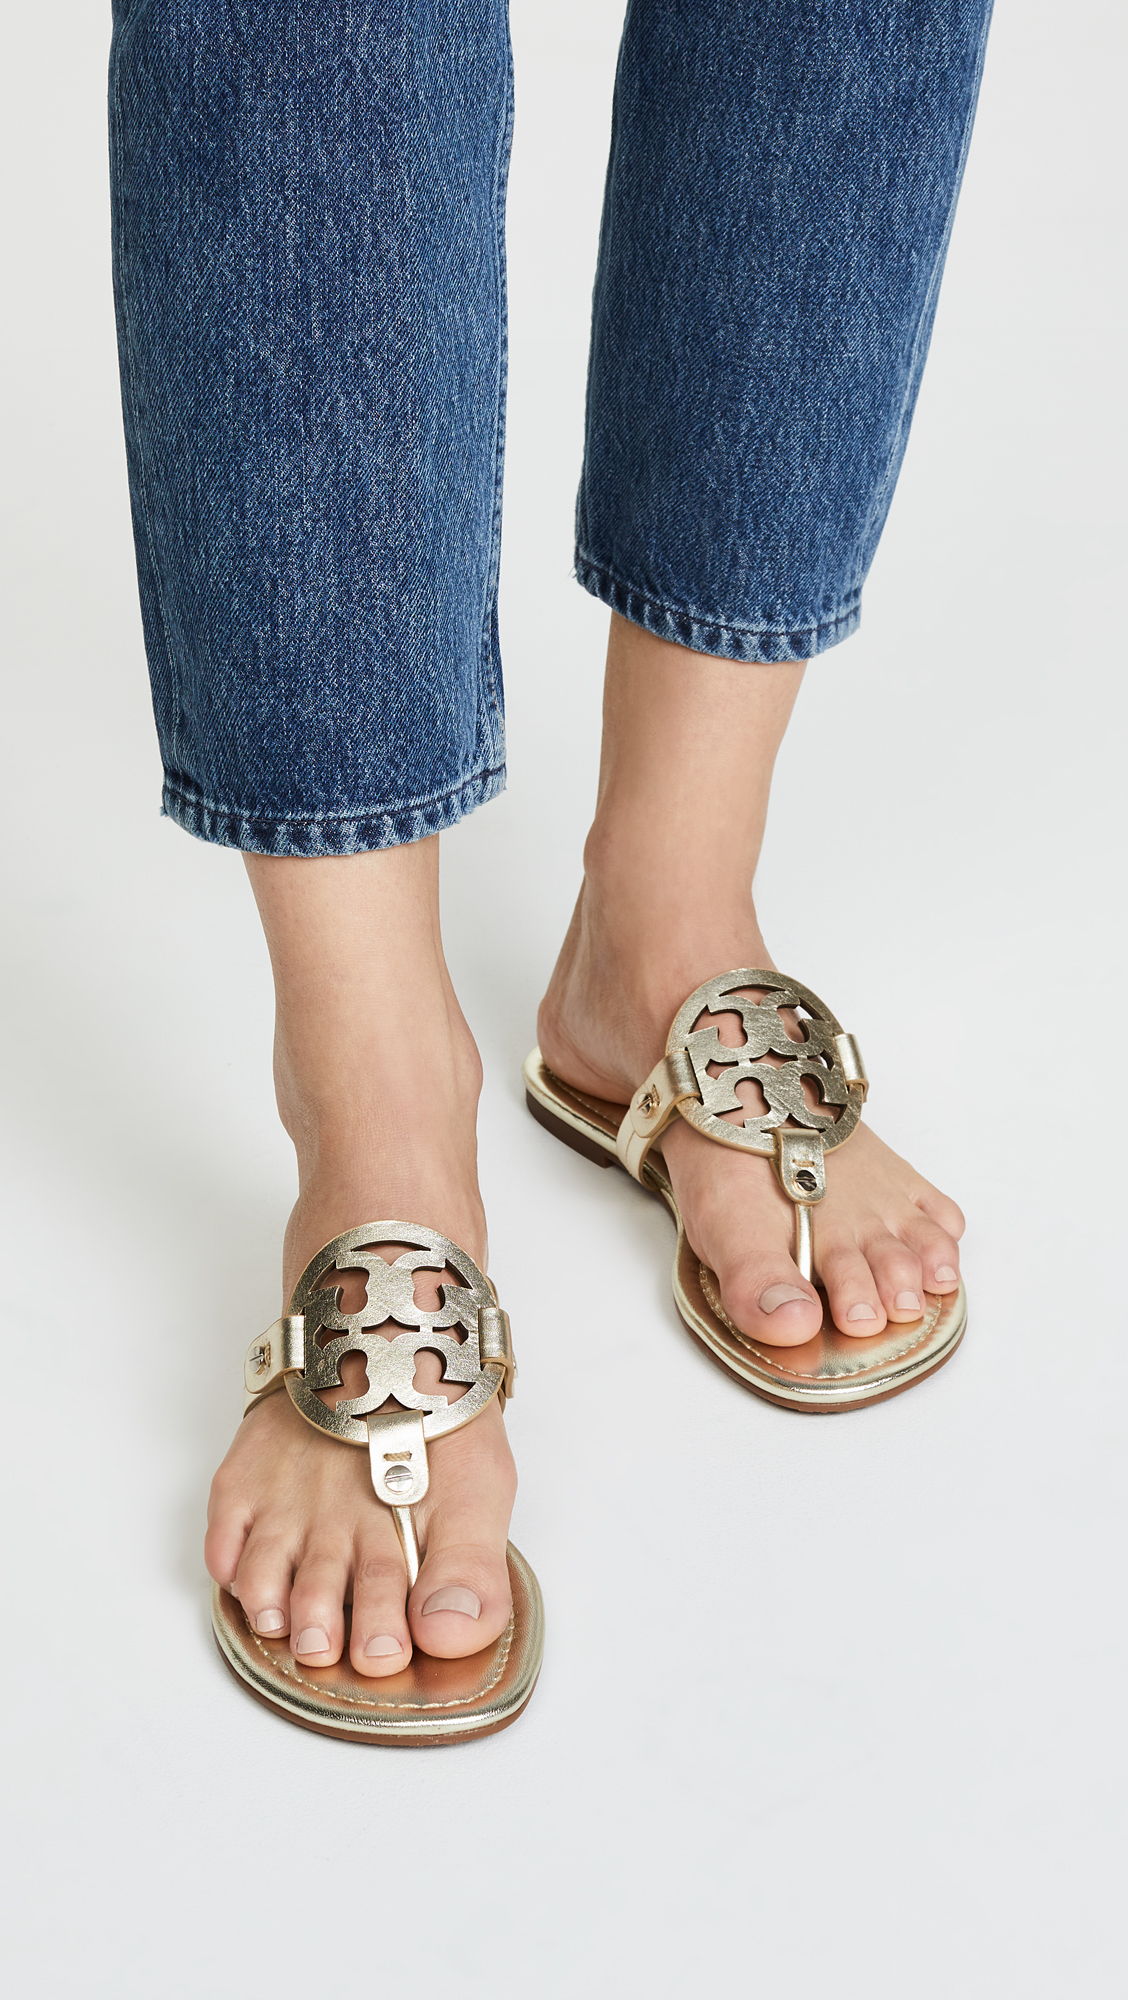 690cd89dc Tory Burch Miller Thong Sandals